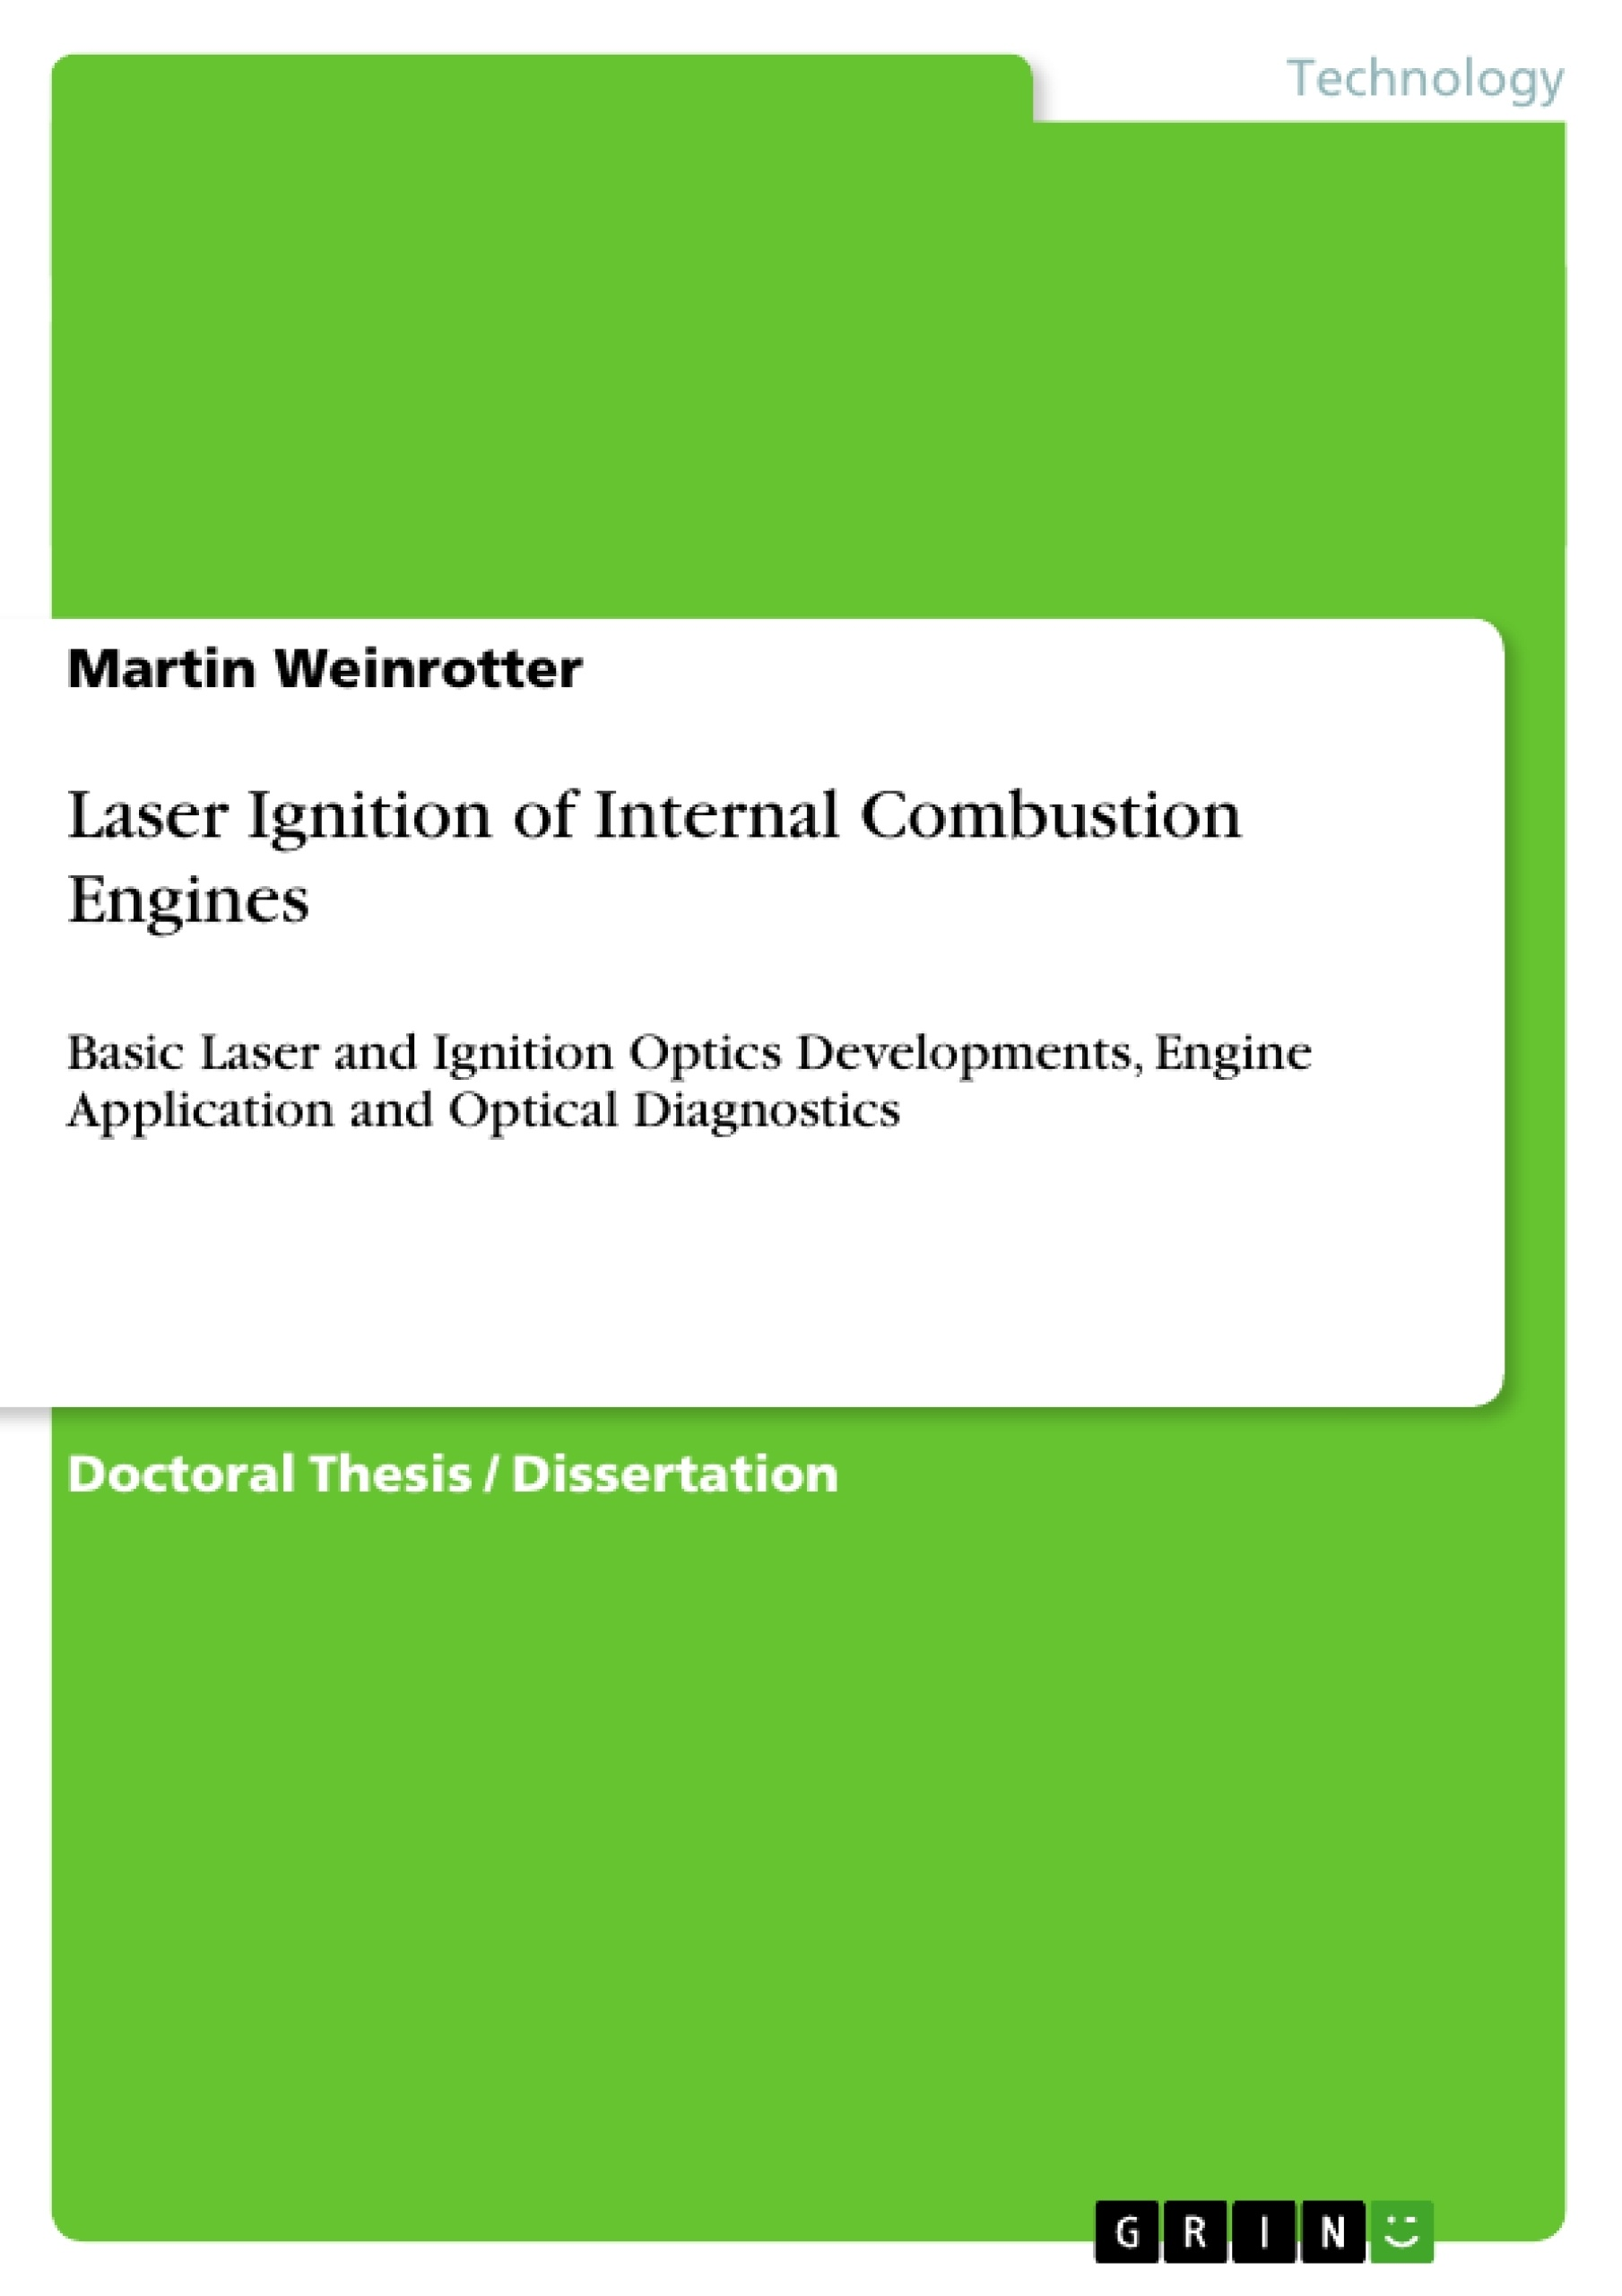 an essay on internal combustion engine